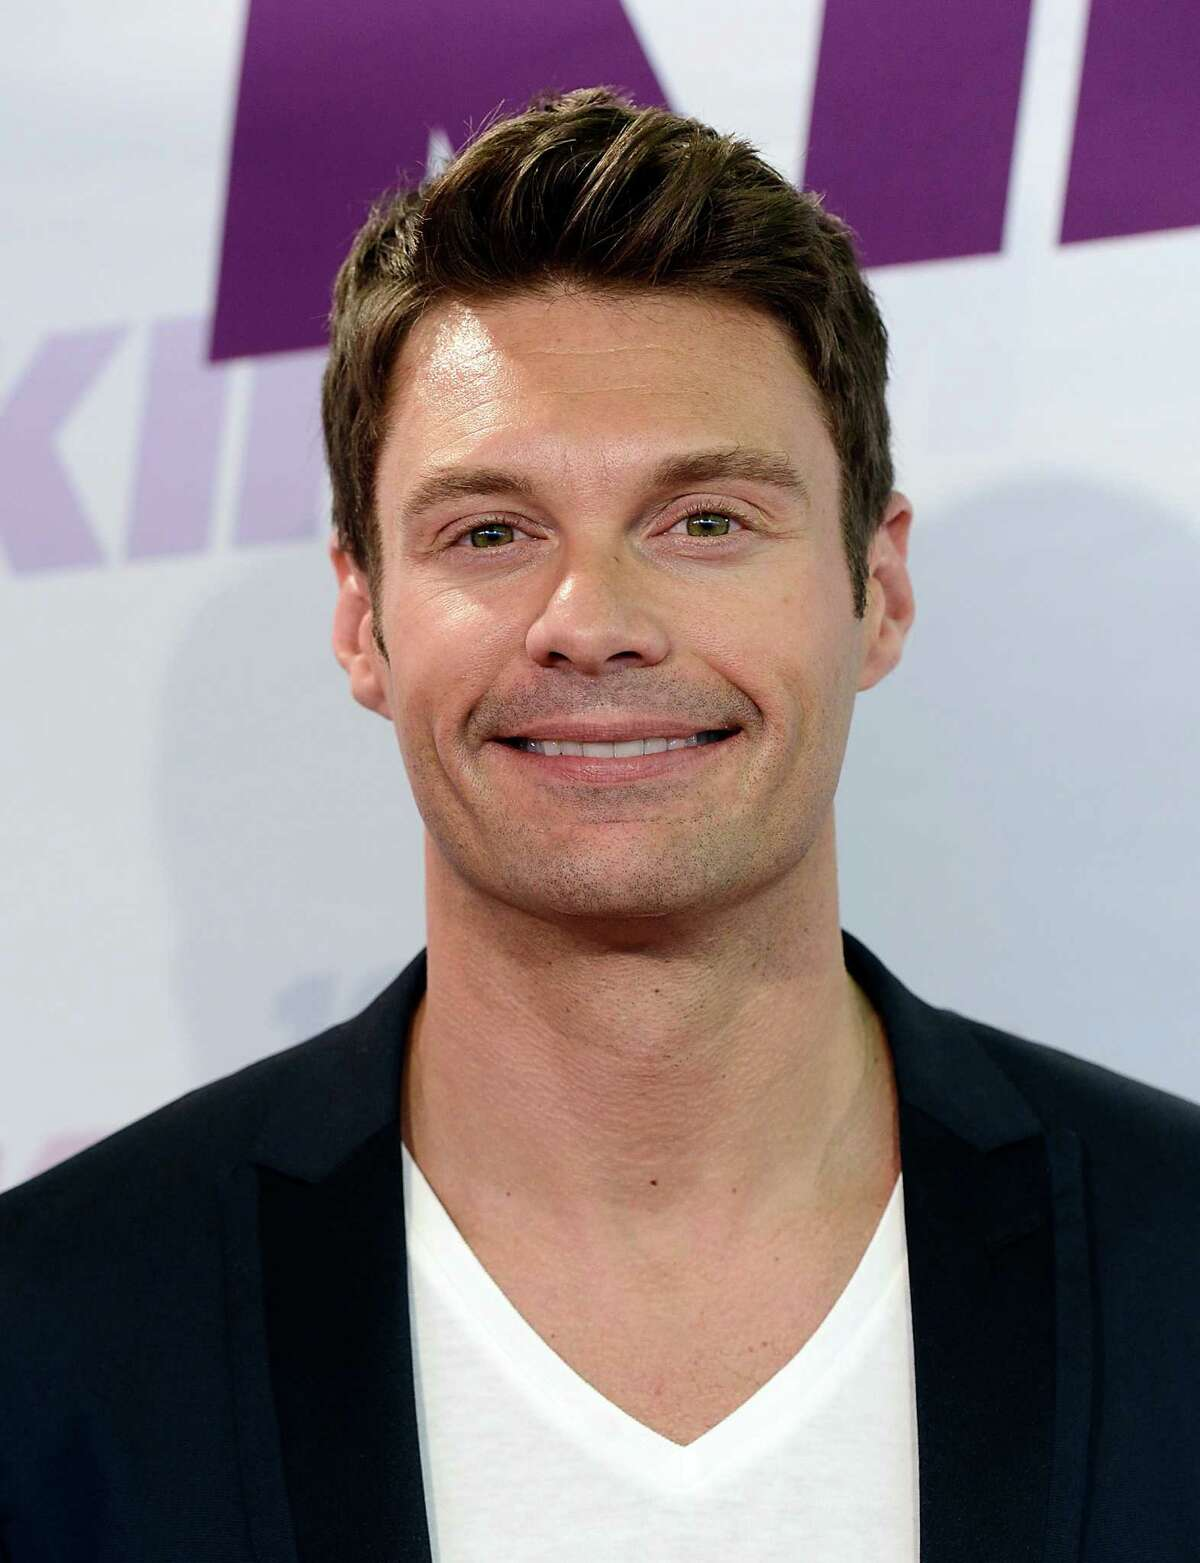 Television and radio personality Ryan Seacrest arrives at Wango Tango 2013 at The Home Depot Center, Saturday, May 11, 2013, in Carson, Calif. (Photo by Dan Steinberg/Invision/AP)